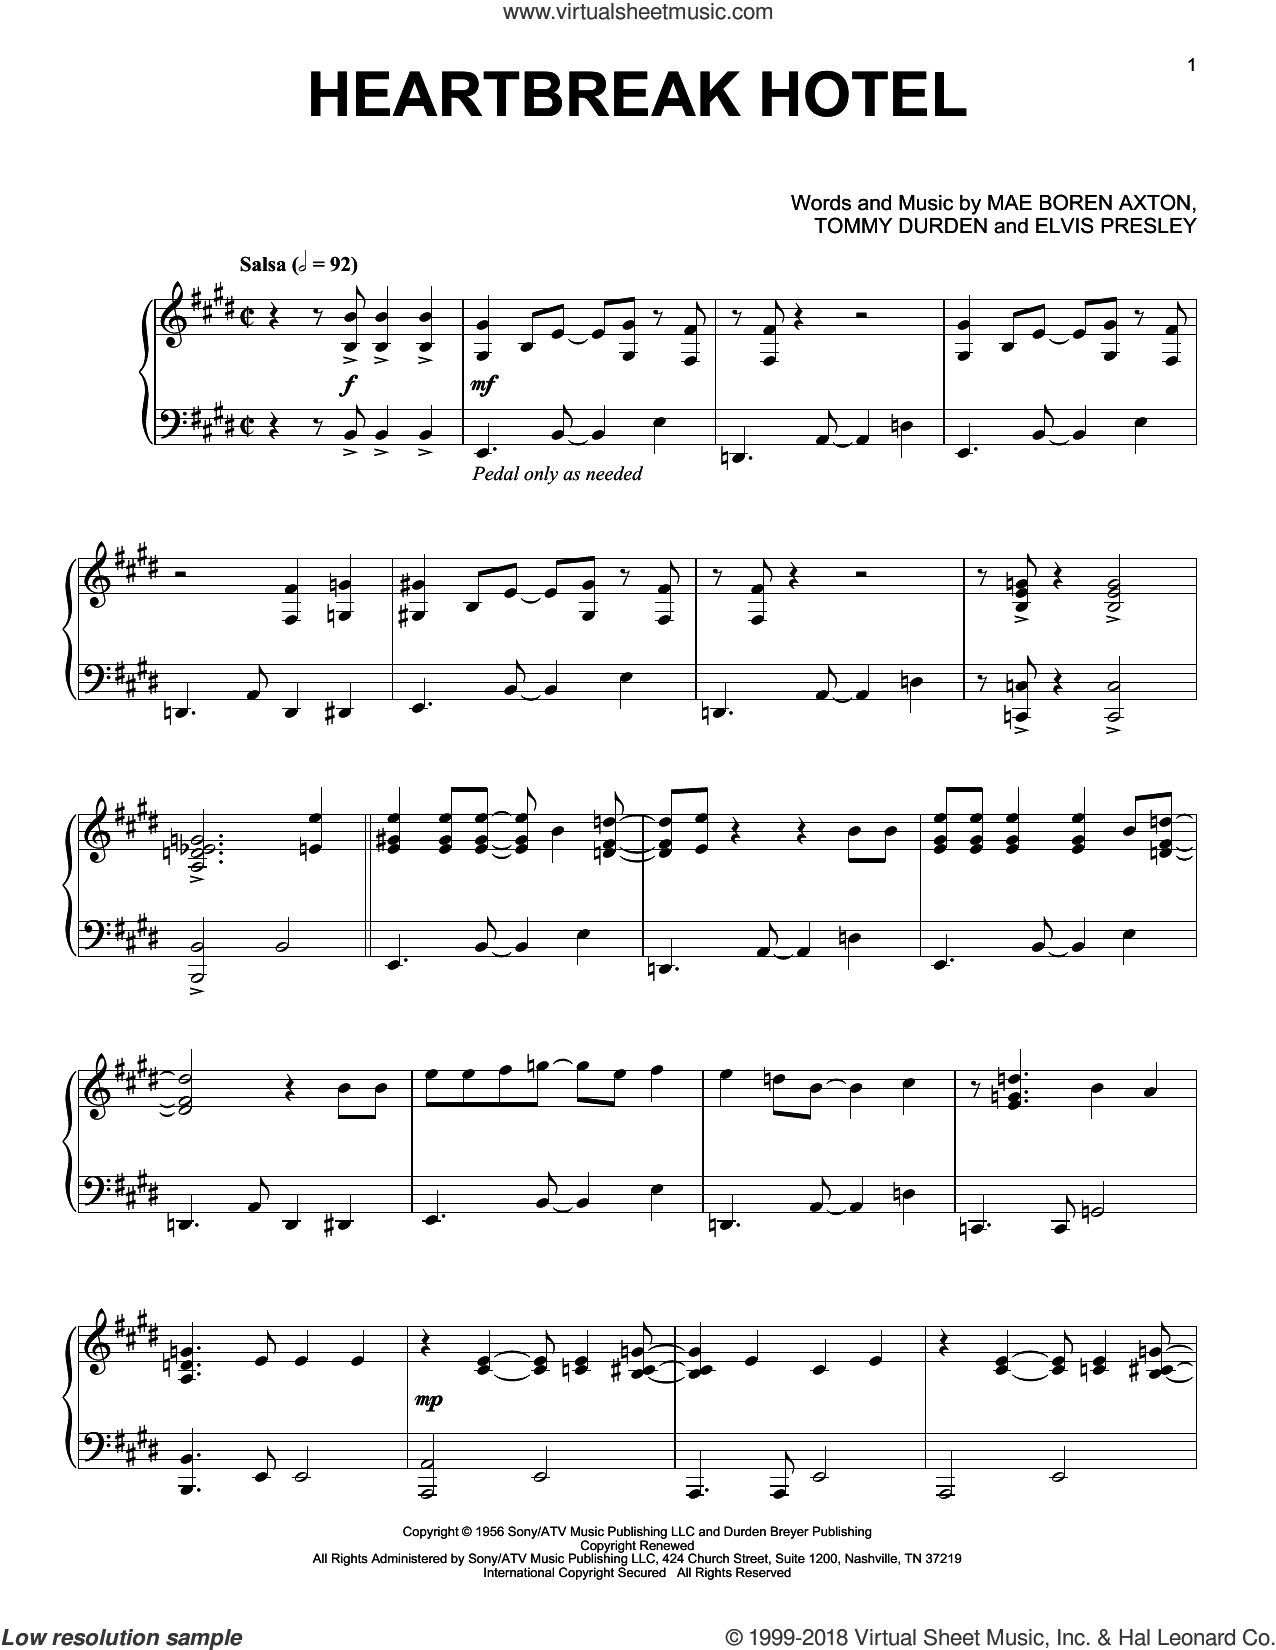 Heartbreak Hotel [Jazz version] sheet music for piano solo by Elvis Presley, Mae Boren Axton and Tommy Durden, intermediate skill level